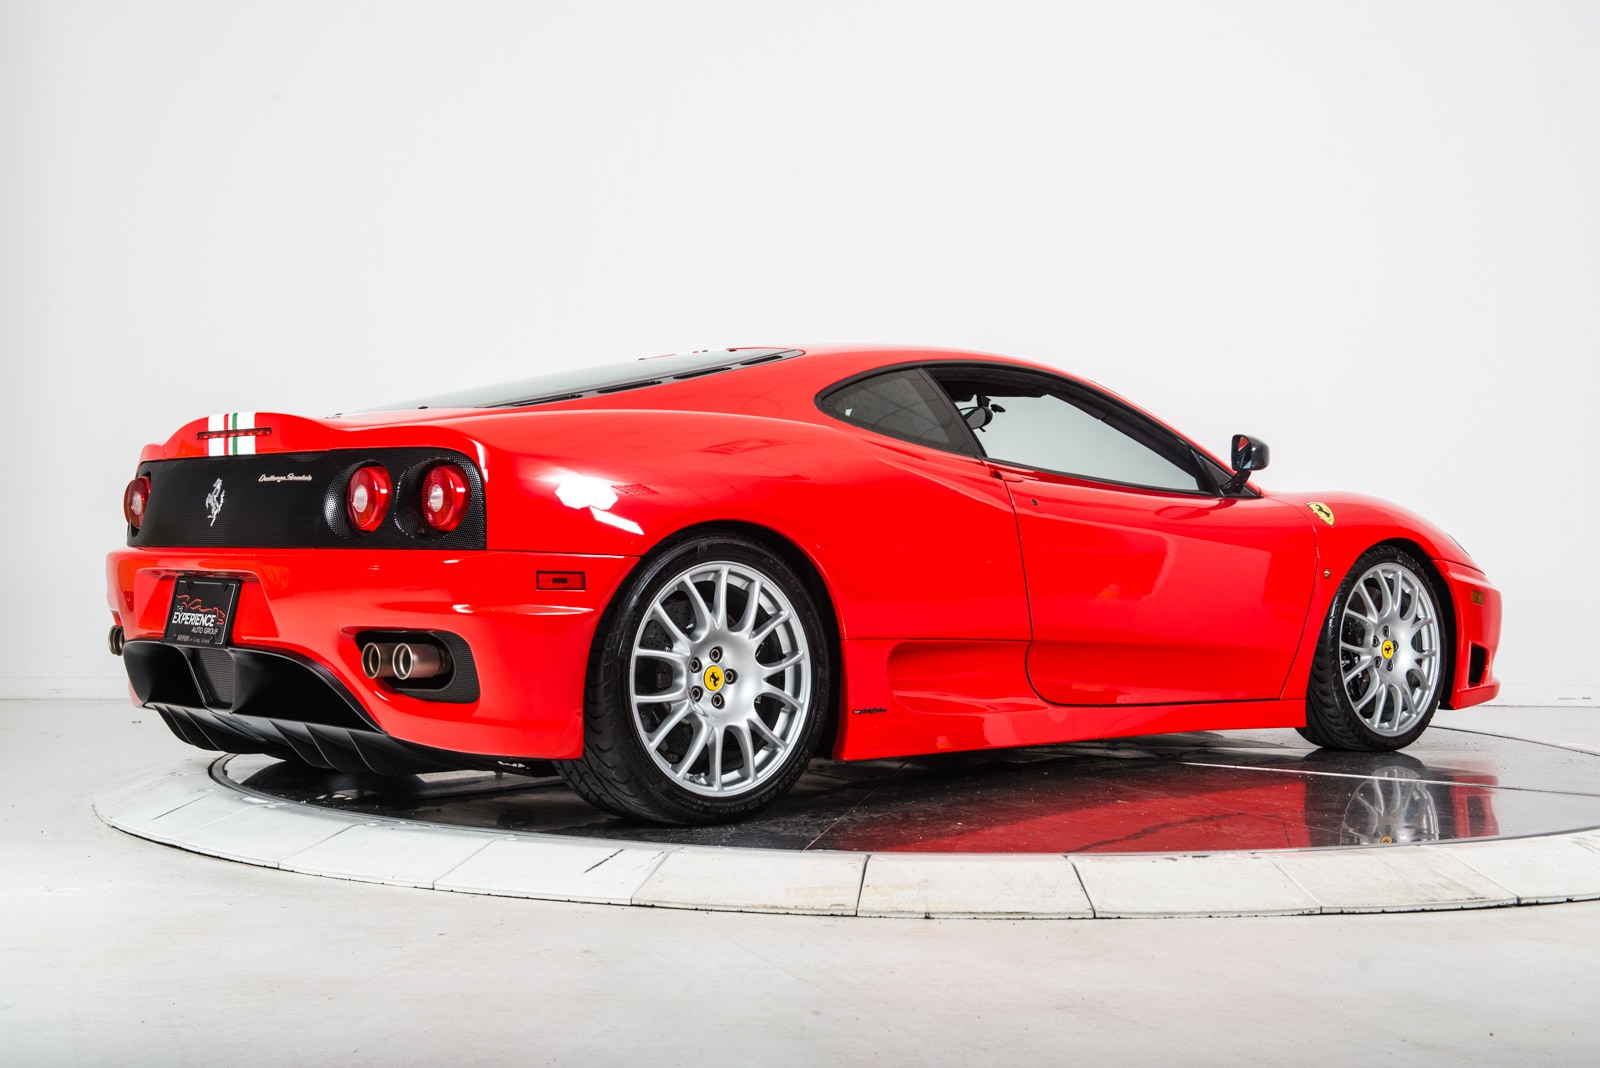 used 2004 ferrari 360 challenge stradale for sale plainview near long island ny vin. Black Bedroom Furniture Sets. Home Design Ideas